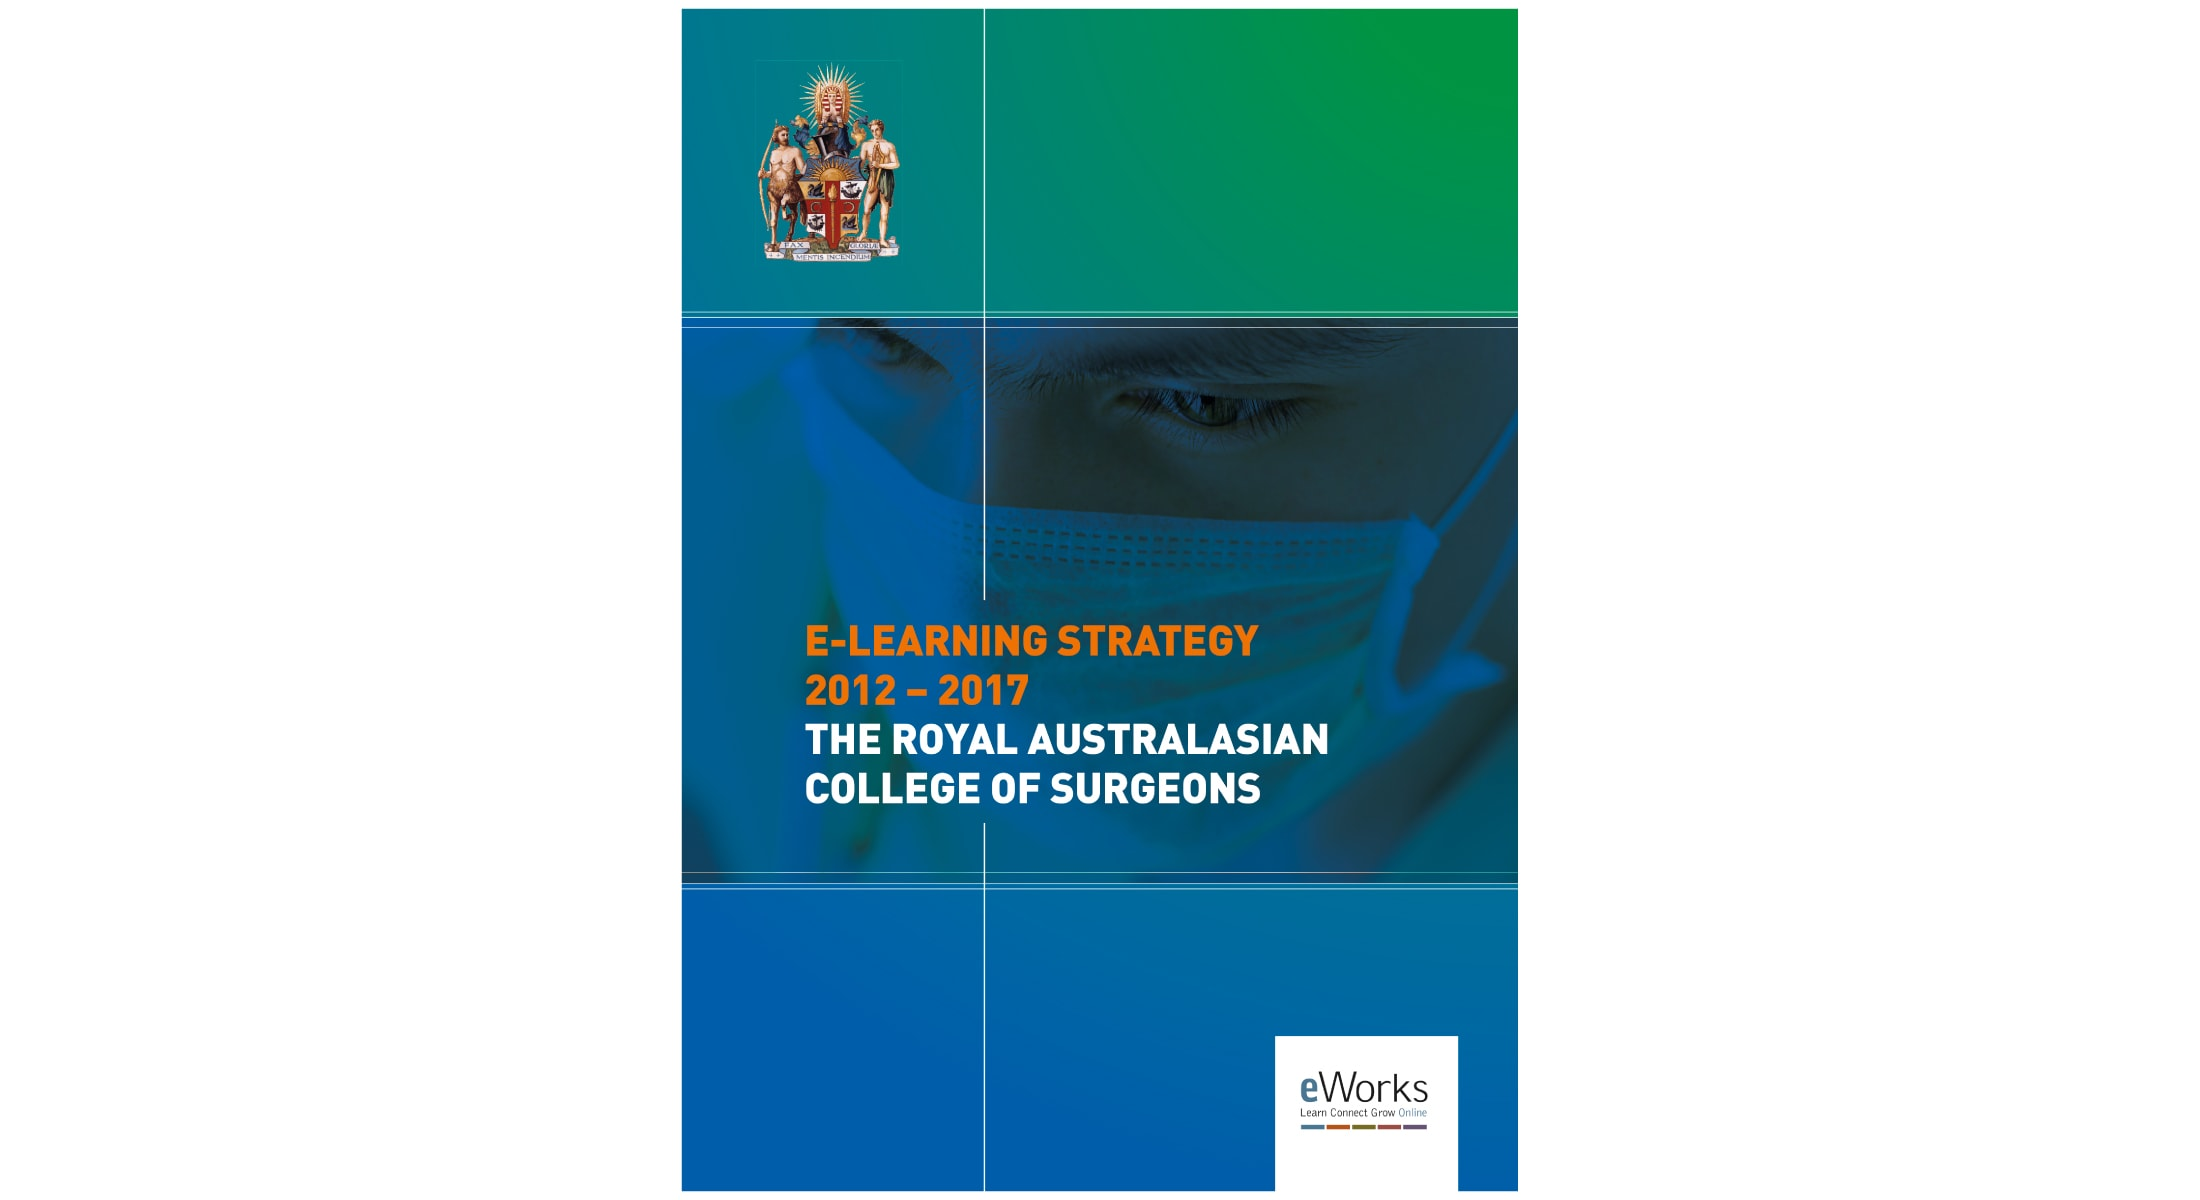 E-Learning Strategy Report